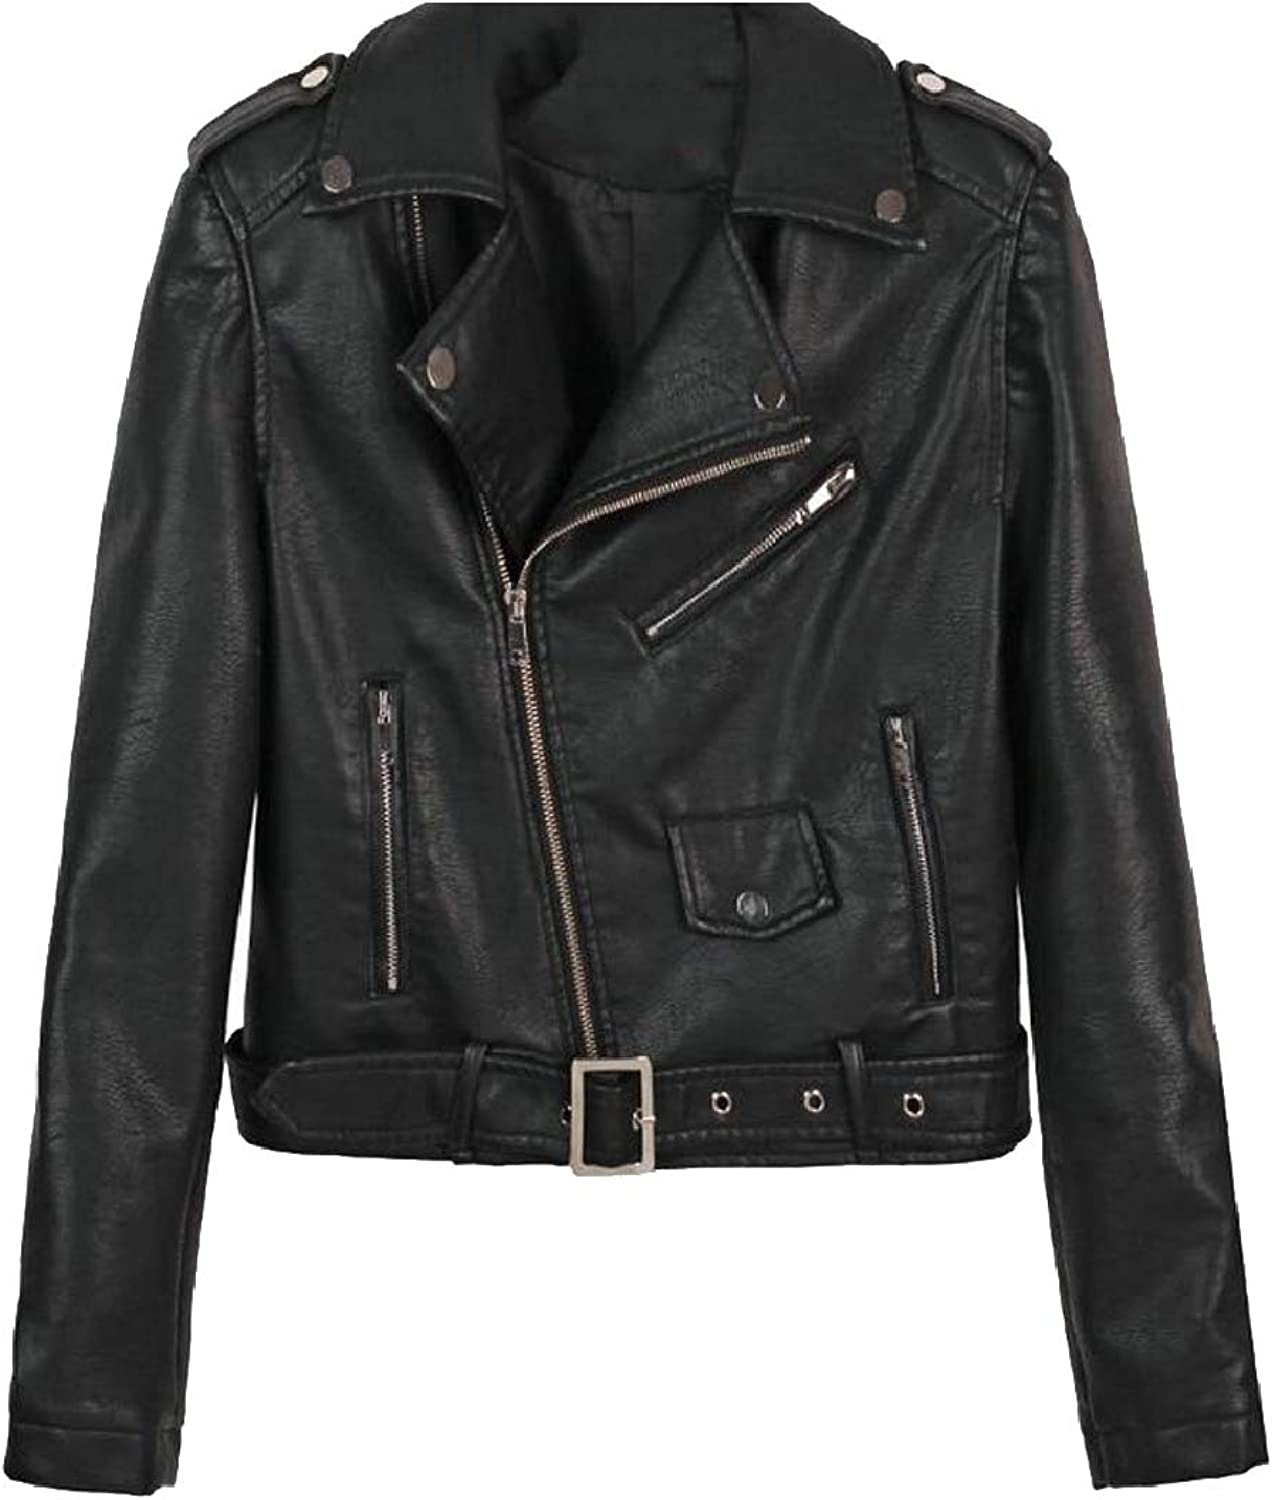 SmeilingCA Women's Belted PU Leather Coats Motorcycle Slim Outwears with Zipper